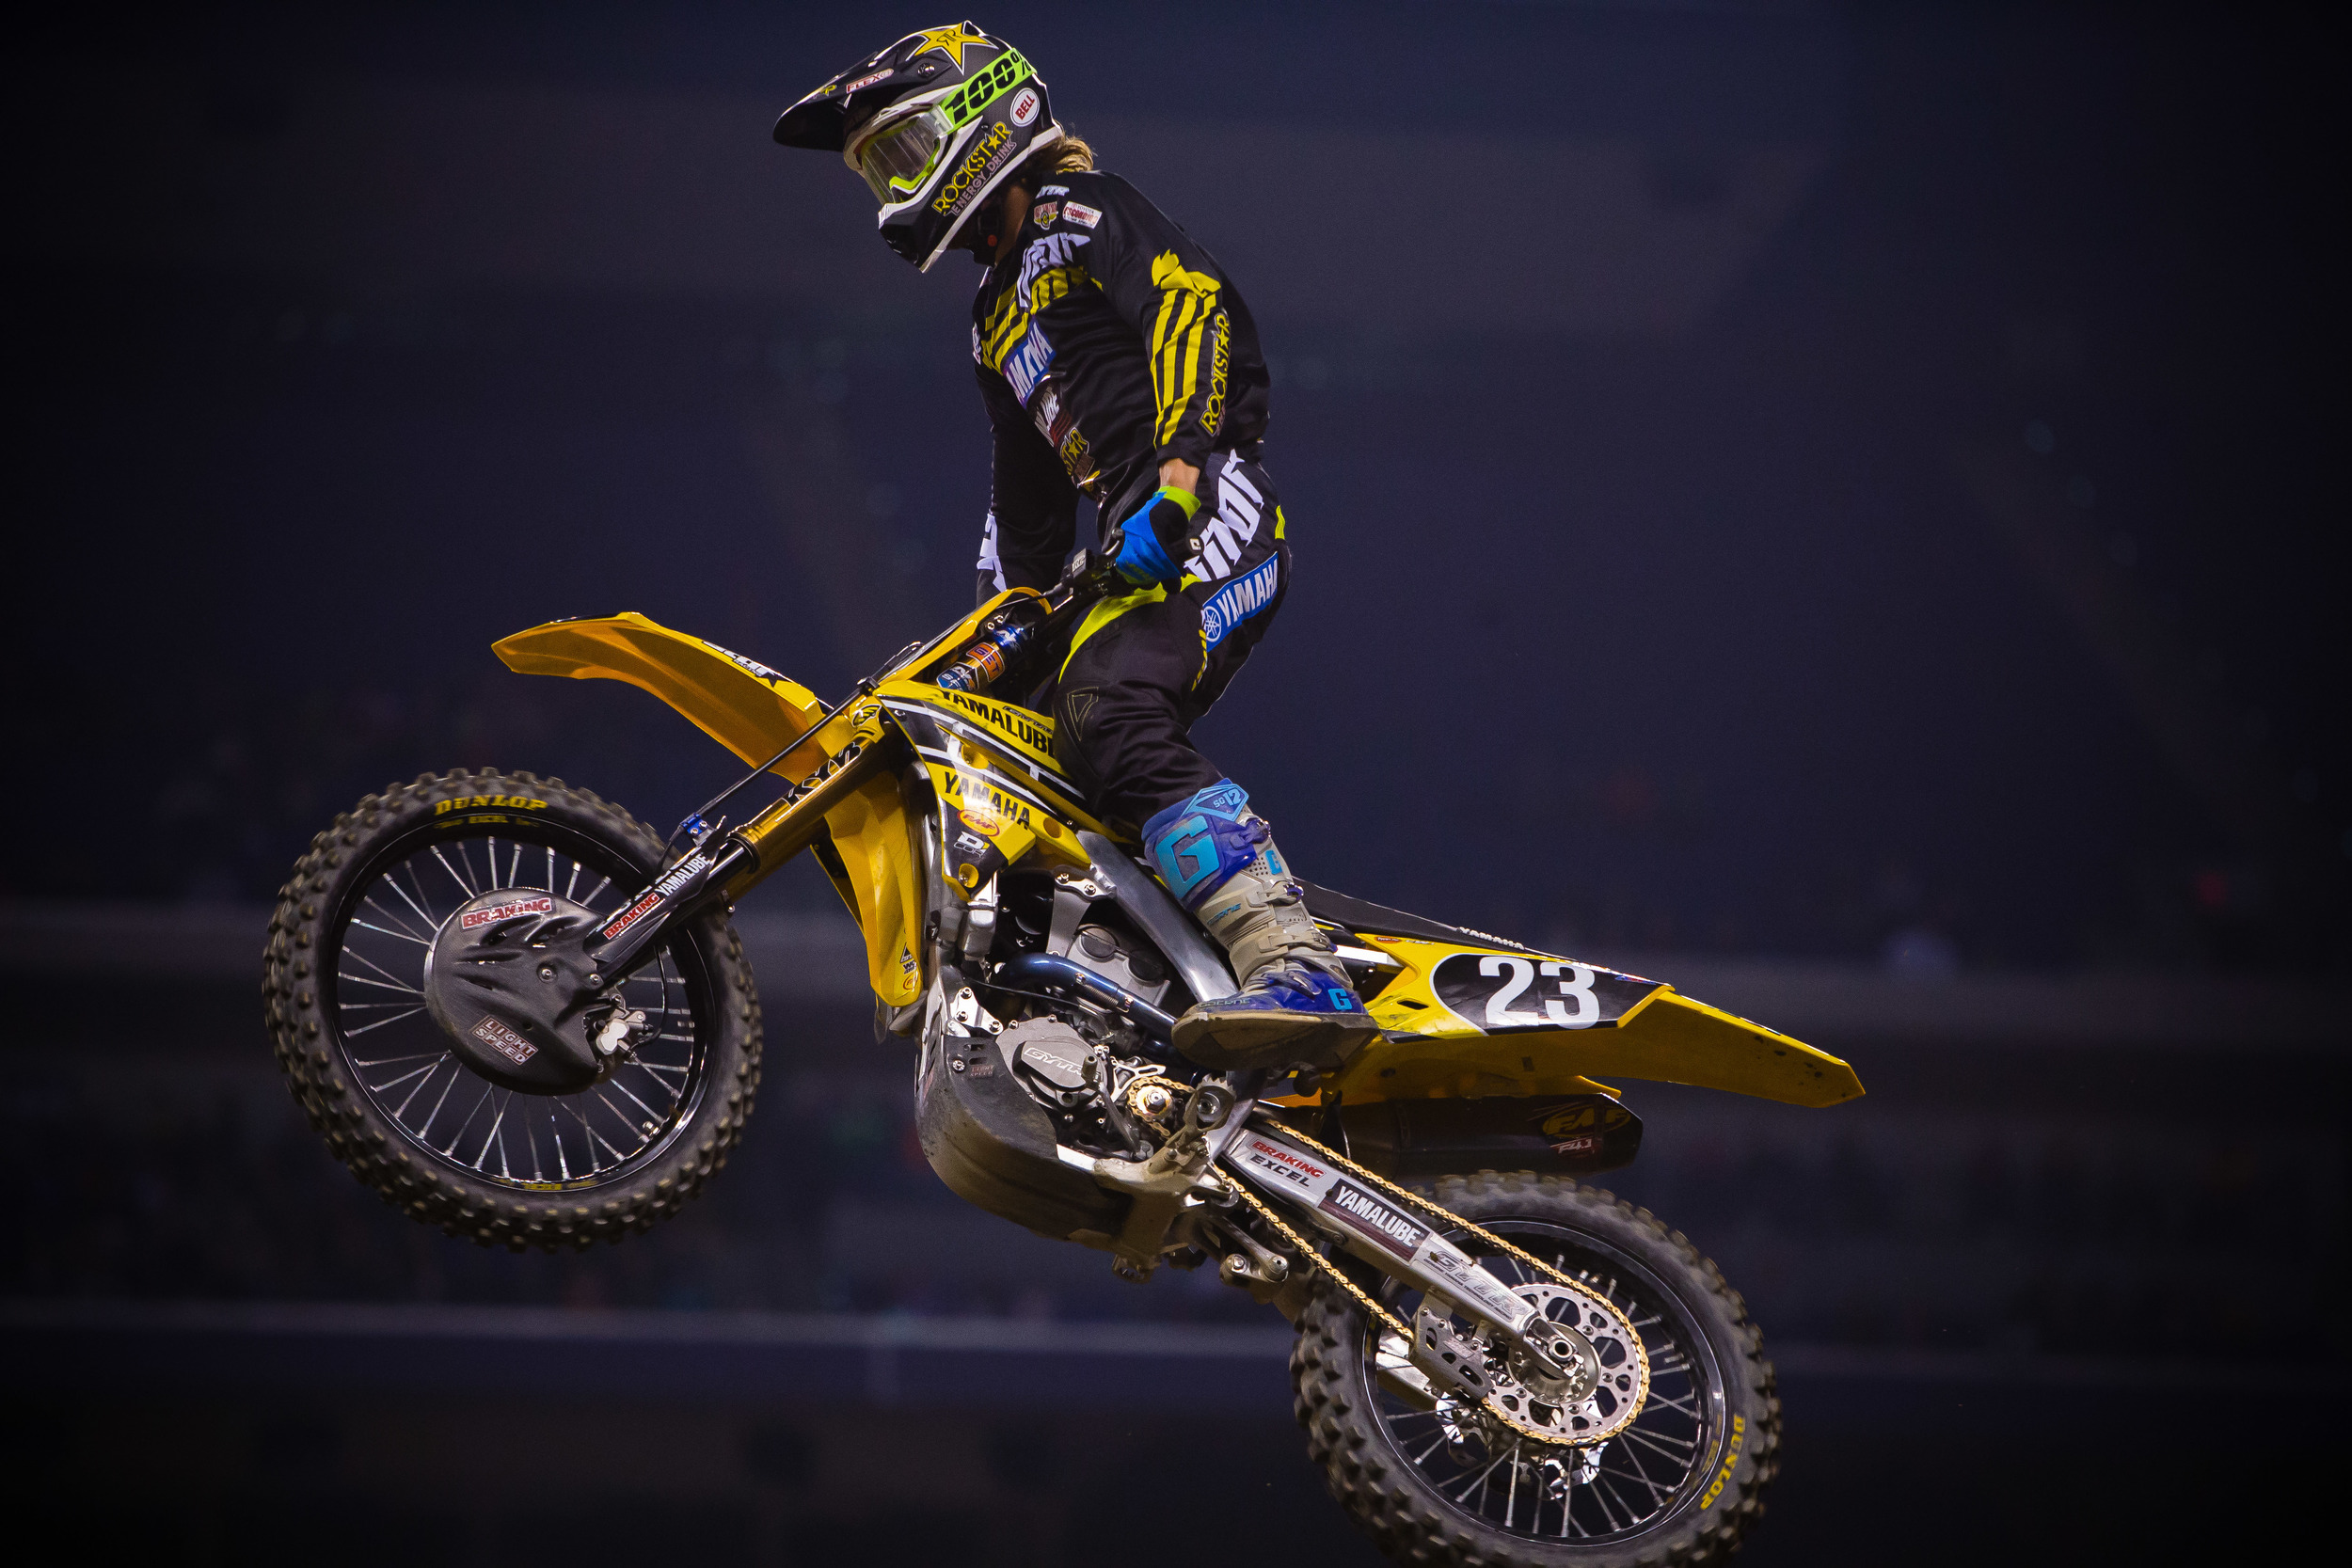 Aaron Plessinger wins his first ever 250 SX Main